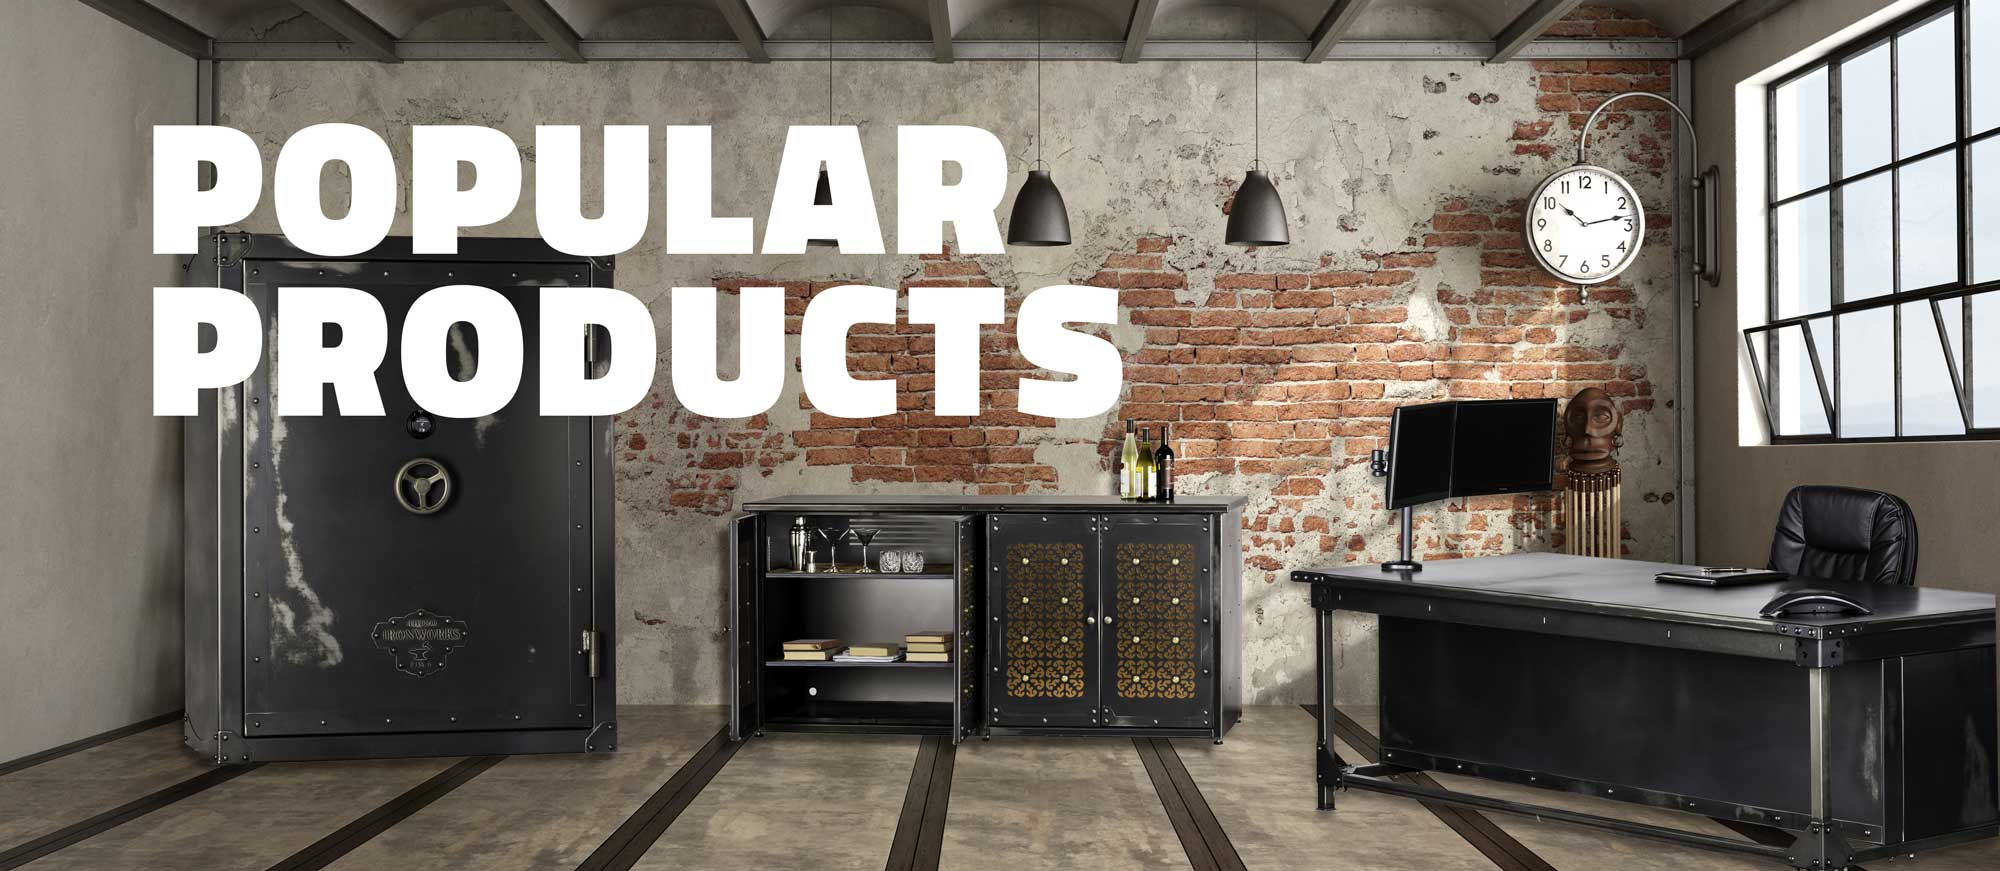 Save 20% on our most popular products